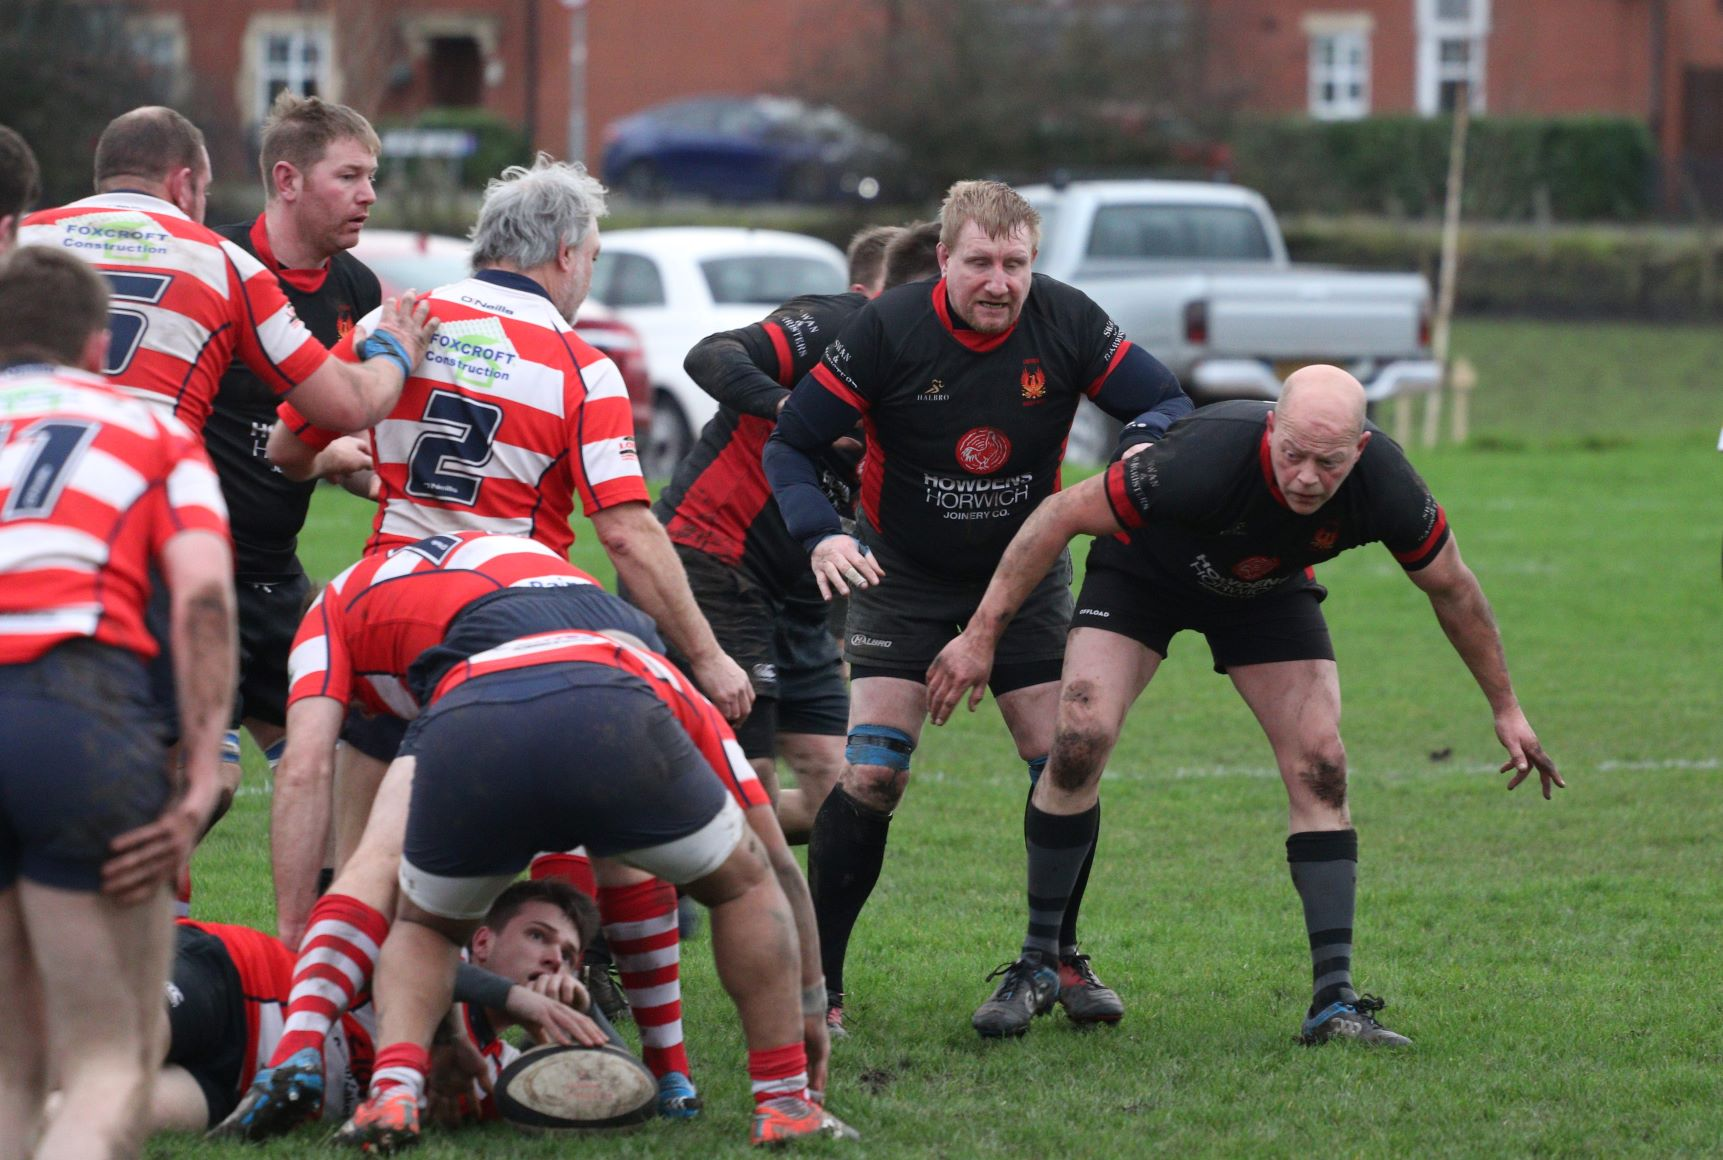 James Trickett & Son Division 4 North Lostock 1st XV 40 pts v 0 pts Vale of Lune 3rd XV Pictures by Leon Wall  Incorrect data type for operator or @Function: Time/Date expected